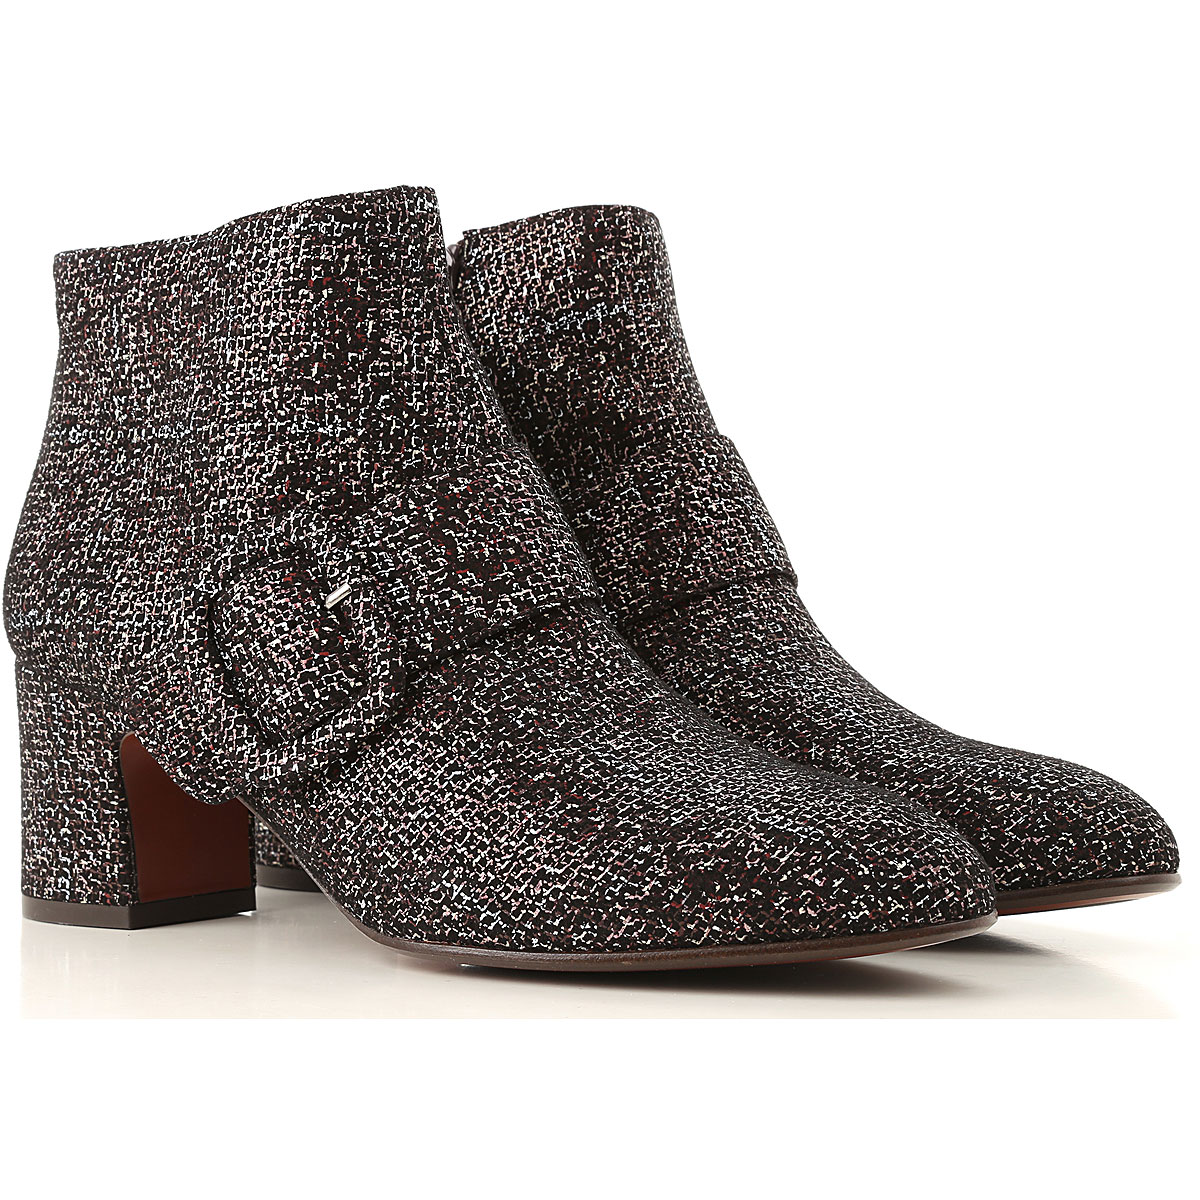 Image of Chie Mihara Boots for Women, Booties, Black, Leather, 2017, 6 7 8 9